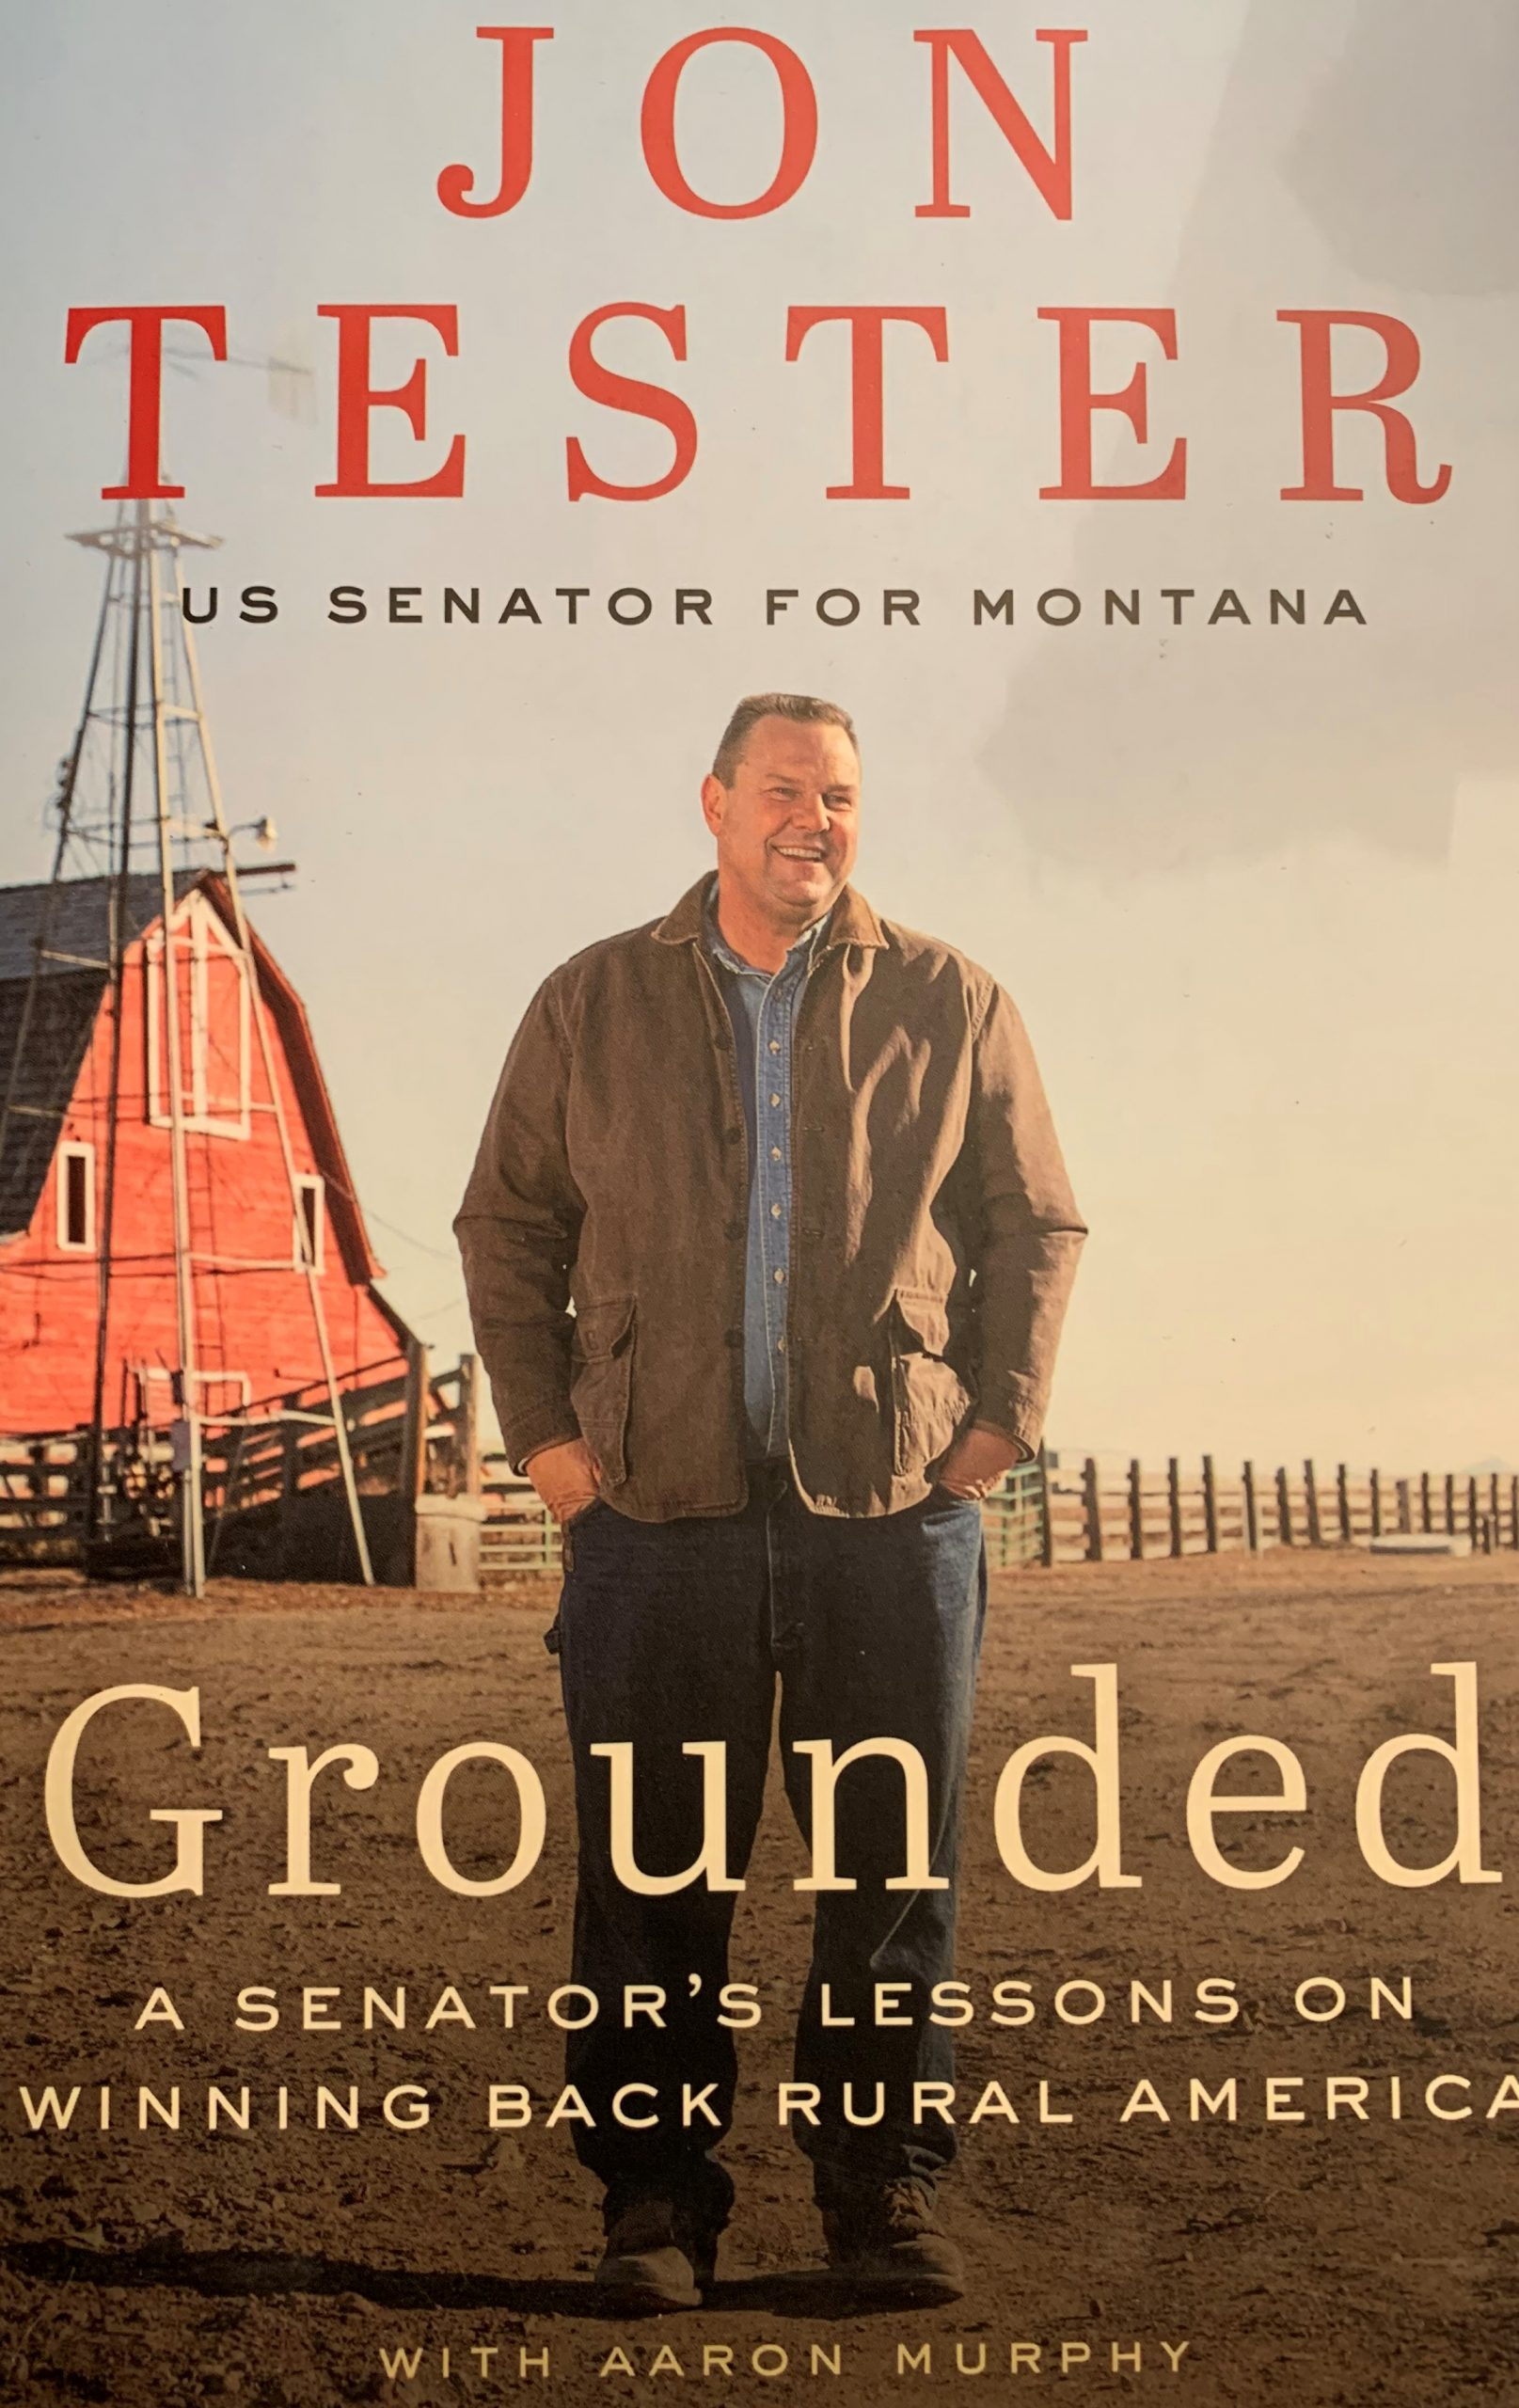 Moss: 'Grounded' a refreshing change from the kiss-and-tell political takedowns